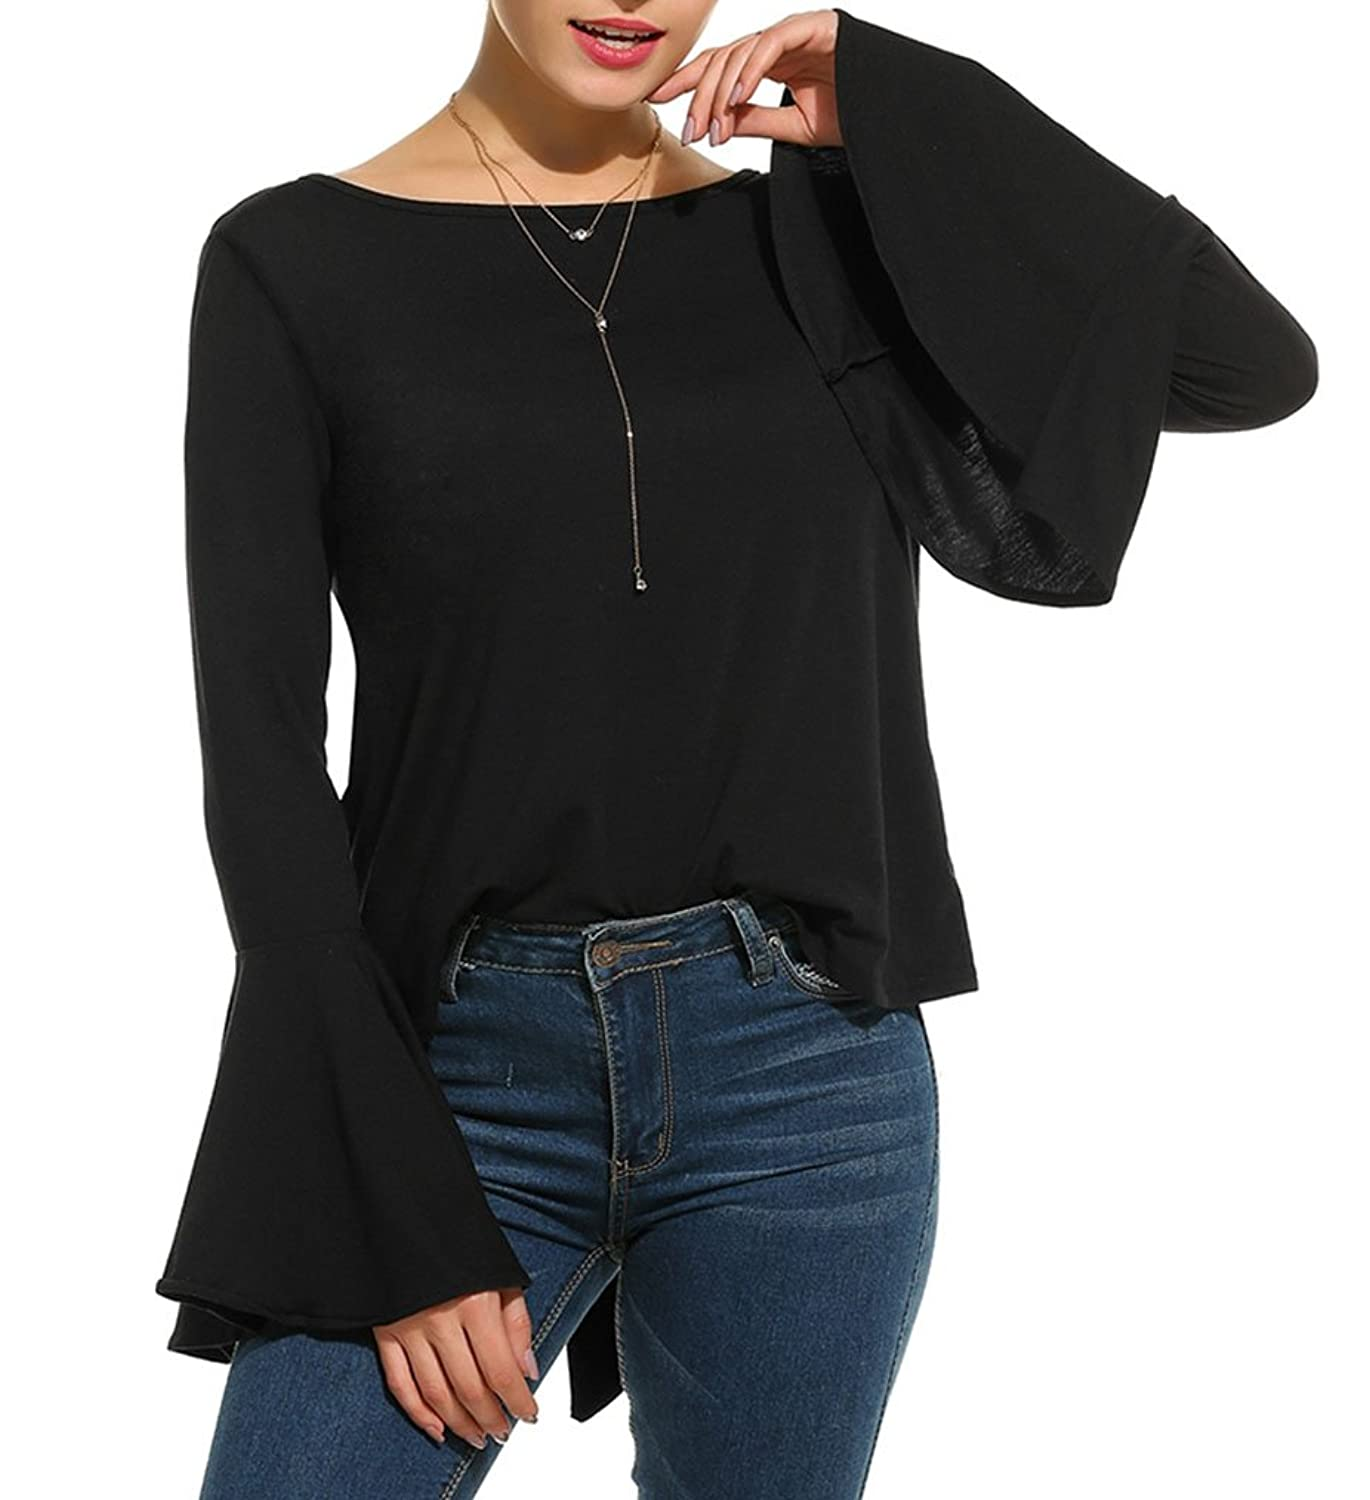 b0cea72d52f99e good Naggoo Women s Long Bell Sleeve Blouse Back Lace Up Tops Casual T- shirts